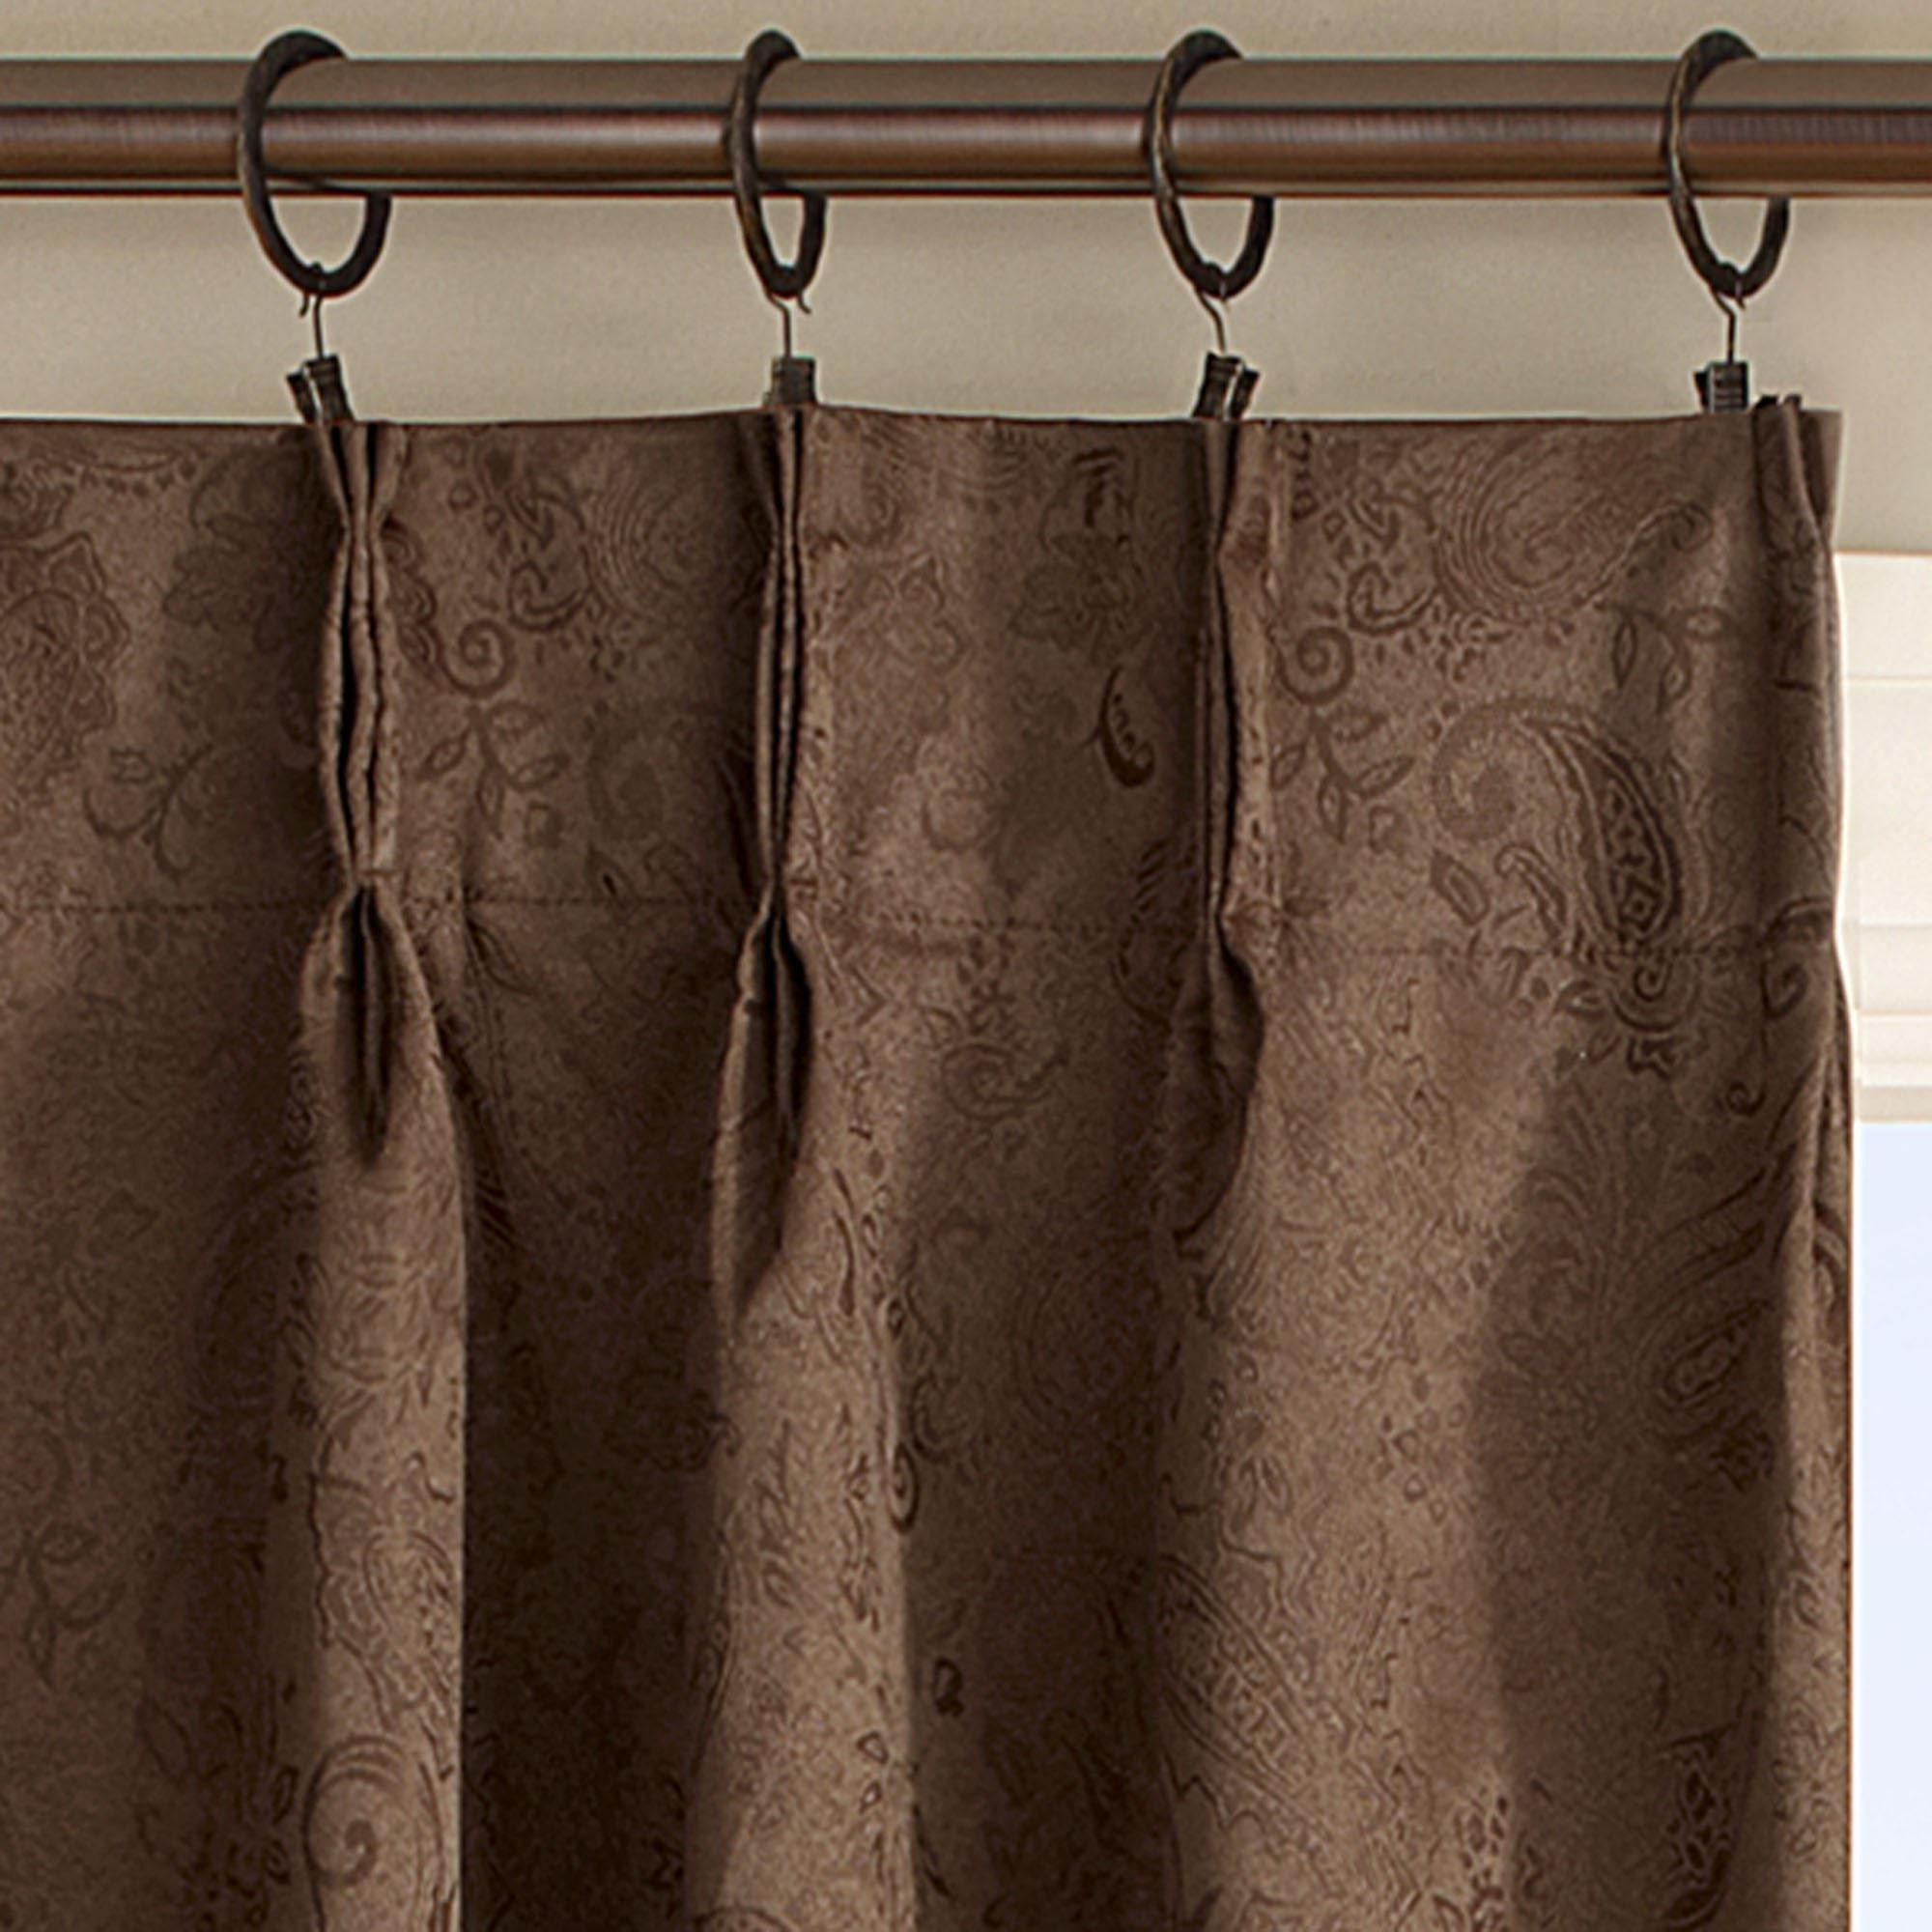 How To Hang Pinch Pleat Curtains Web Technology Pinch Pleat Curtains Pleated Curtains Curtains